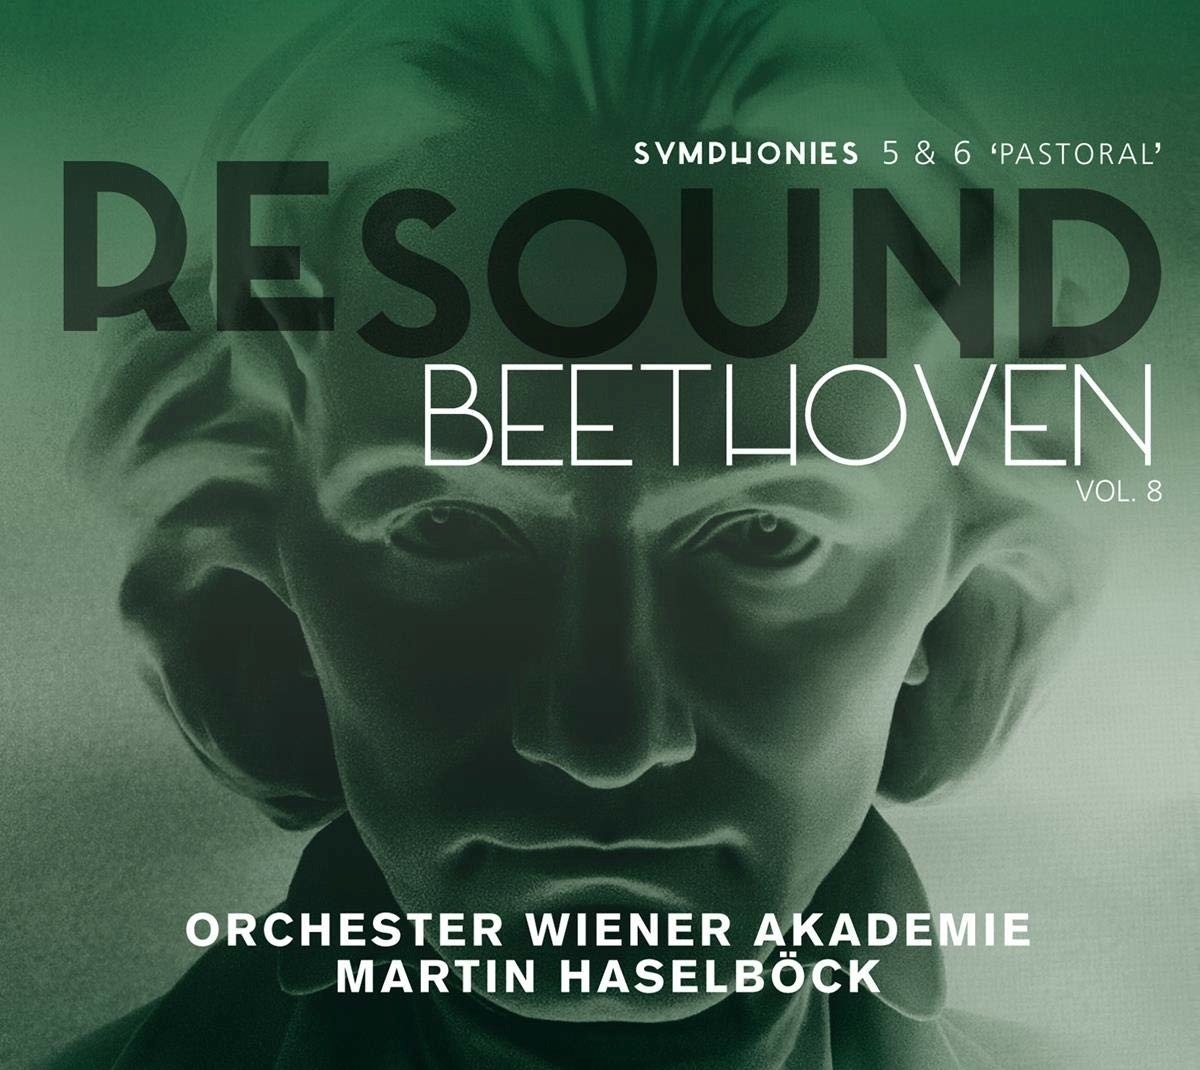 2020, martin haselöck, orchester wiener akademie, symphonies, pastoral, beethoven